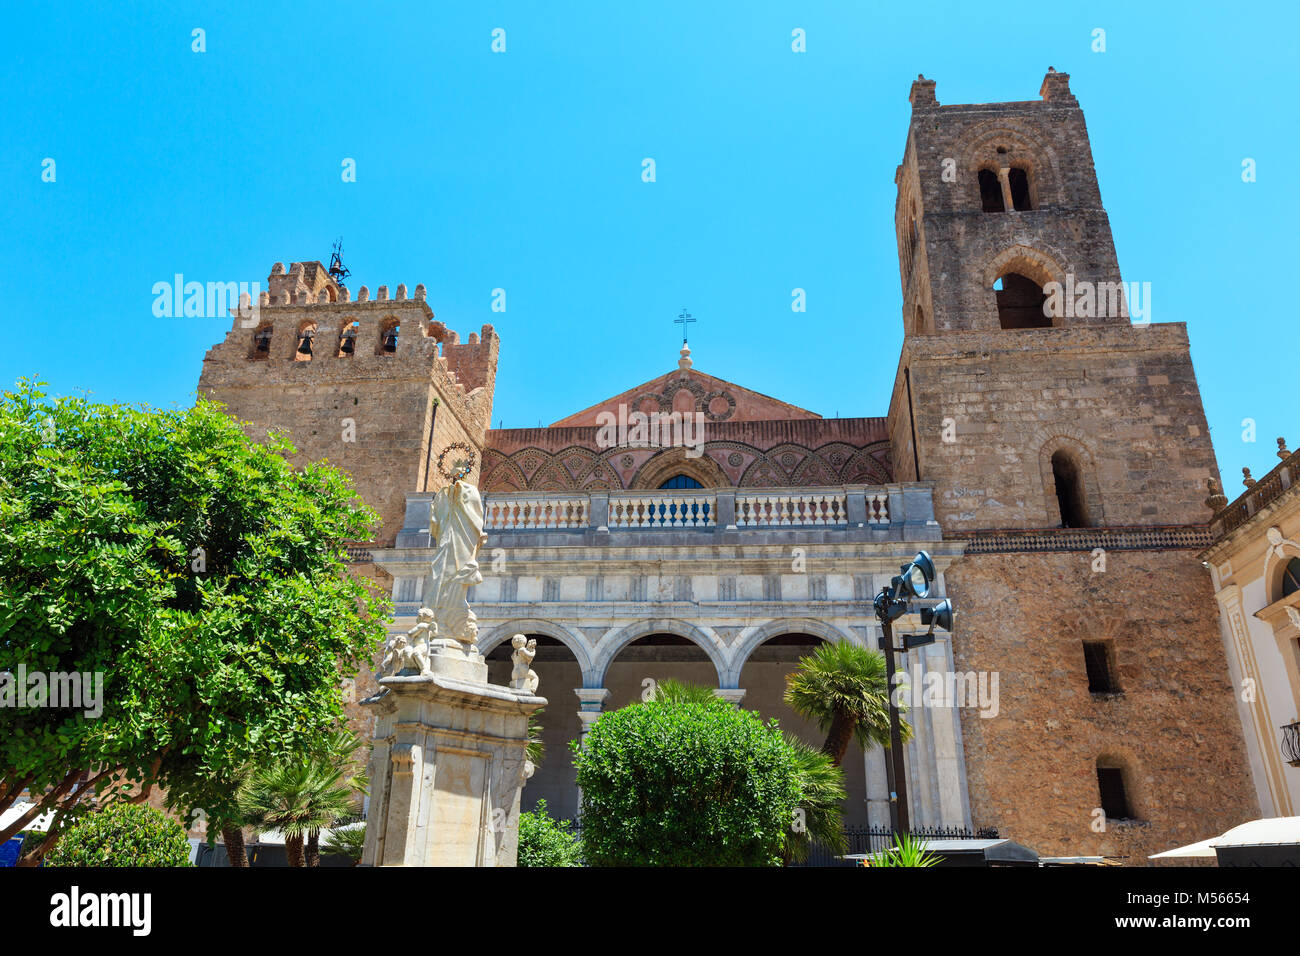 Monreale Cathedral, Palermo, Sicily, Italy - Stock Image